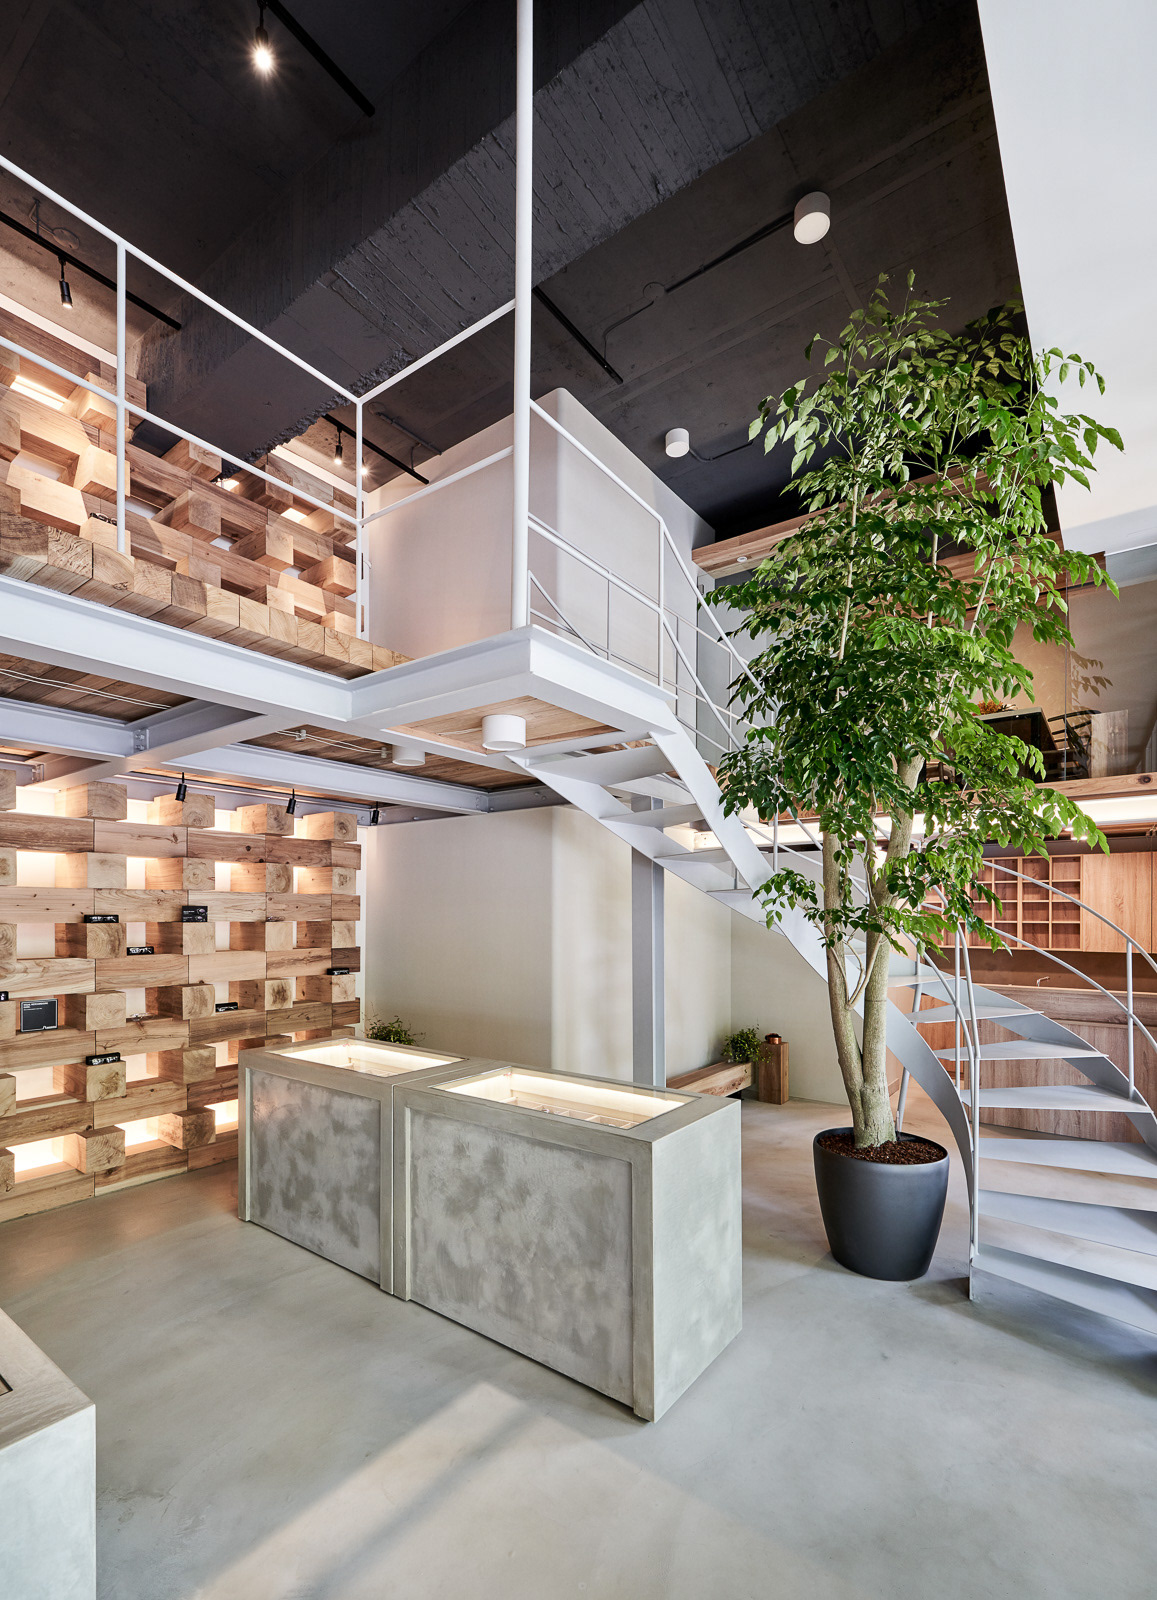 architecture Commercial Store heycheese interior design  mezzanine optical store renovation Soar Design taiwan wood